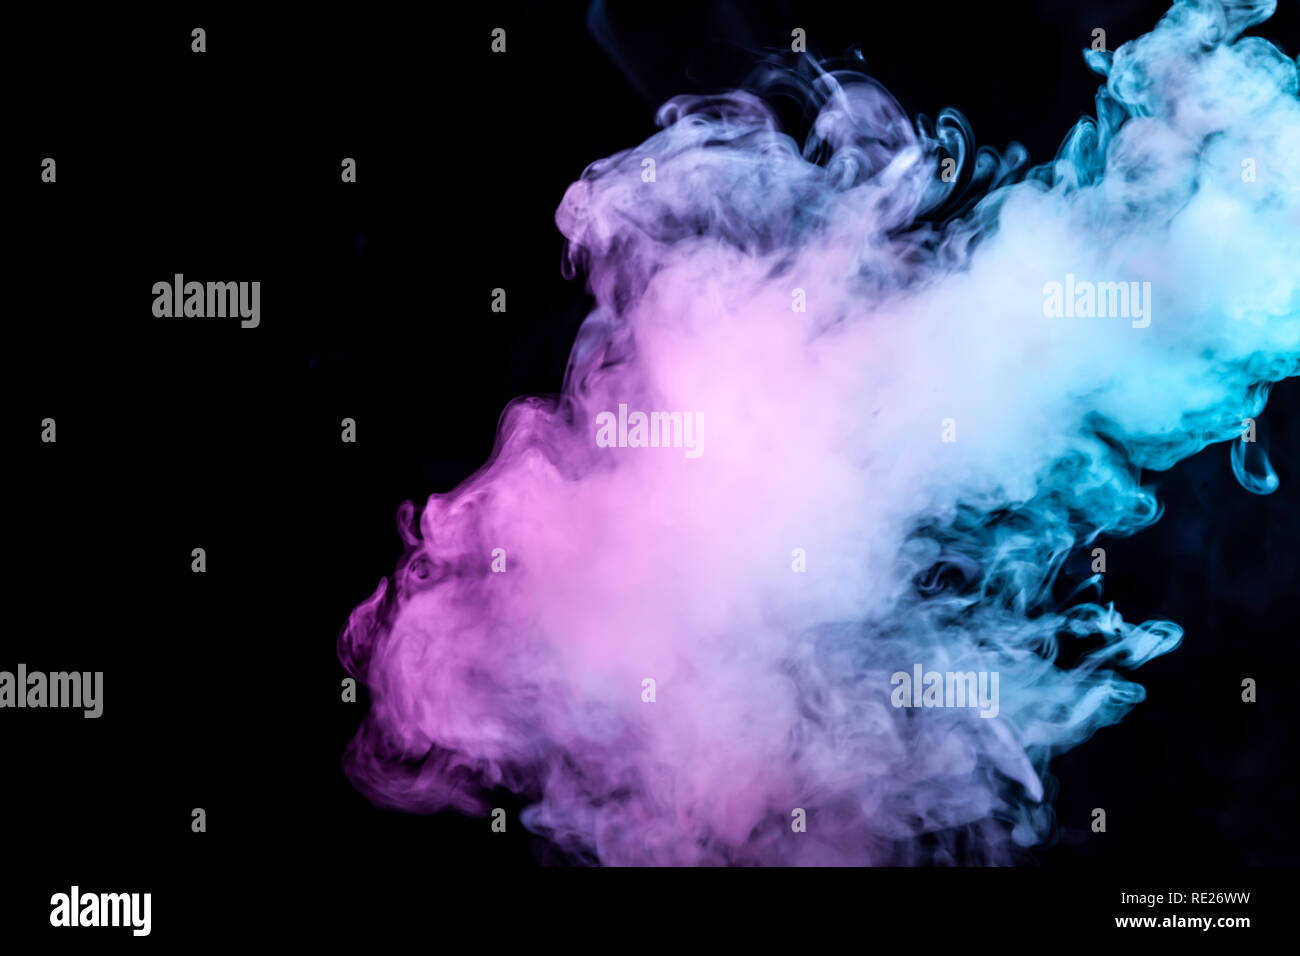 Pleasing Clouds Of Isolated Colored Smoke Blue Red Green Pink Download Free Architecture Designs Jebrpmadebymaigaardcom